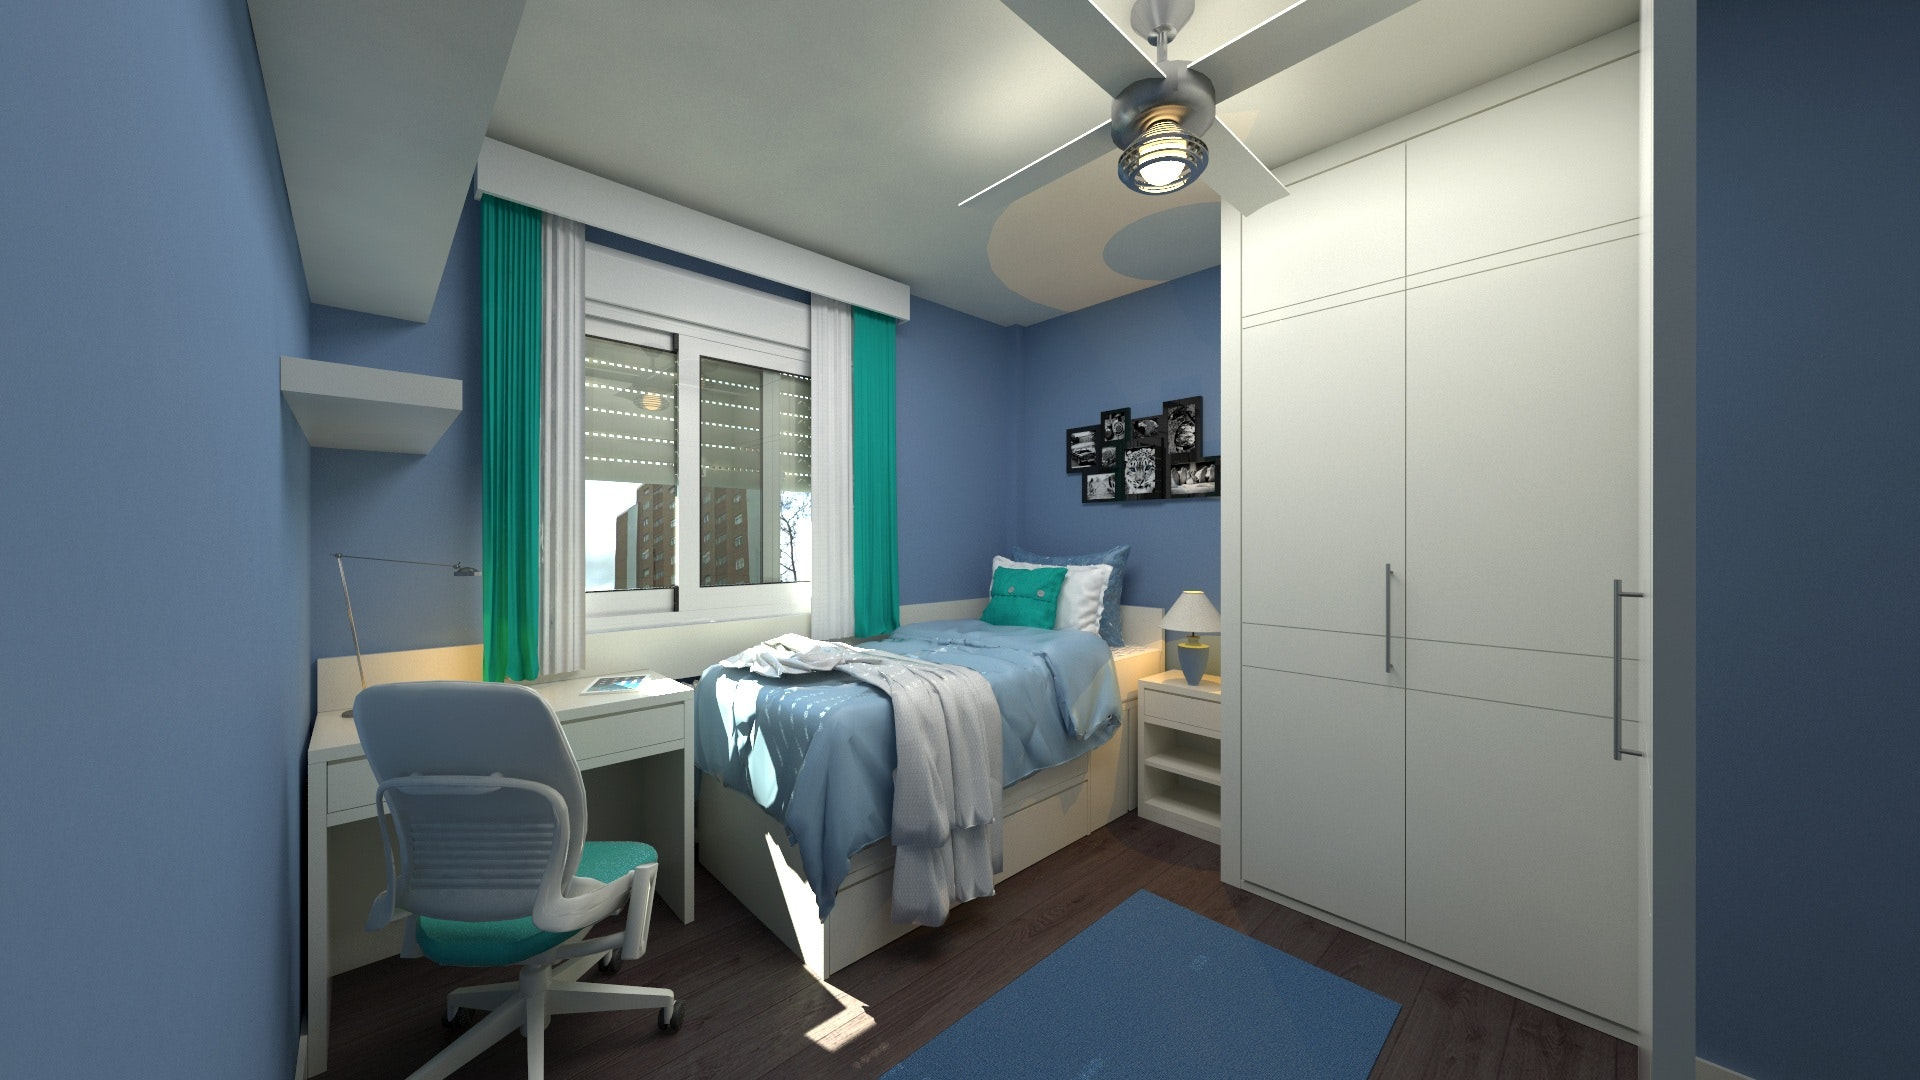 edit & post 10 Tips to Help You Organize Your Dorm Room